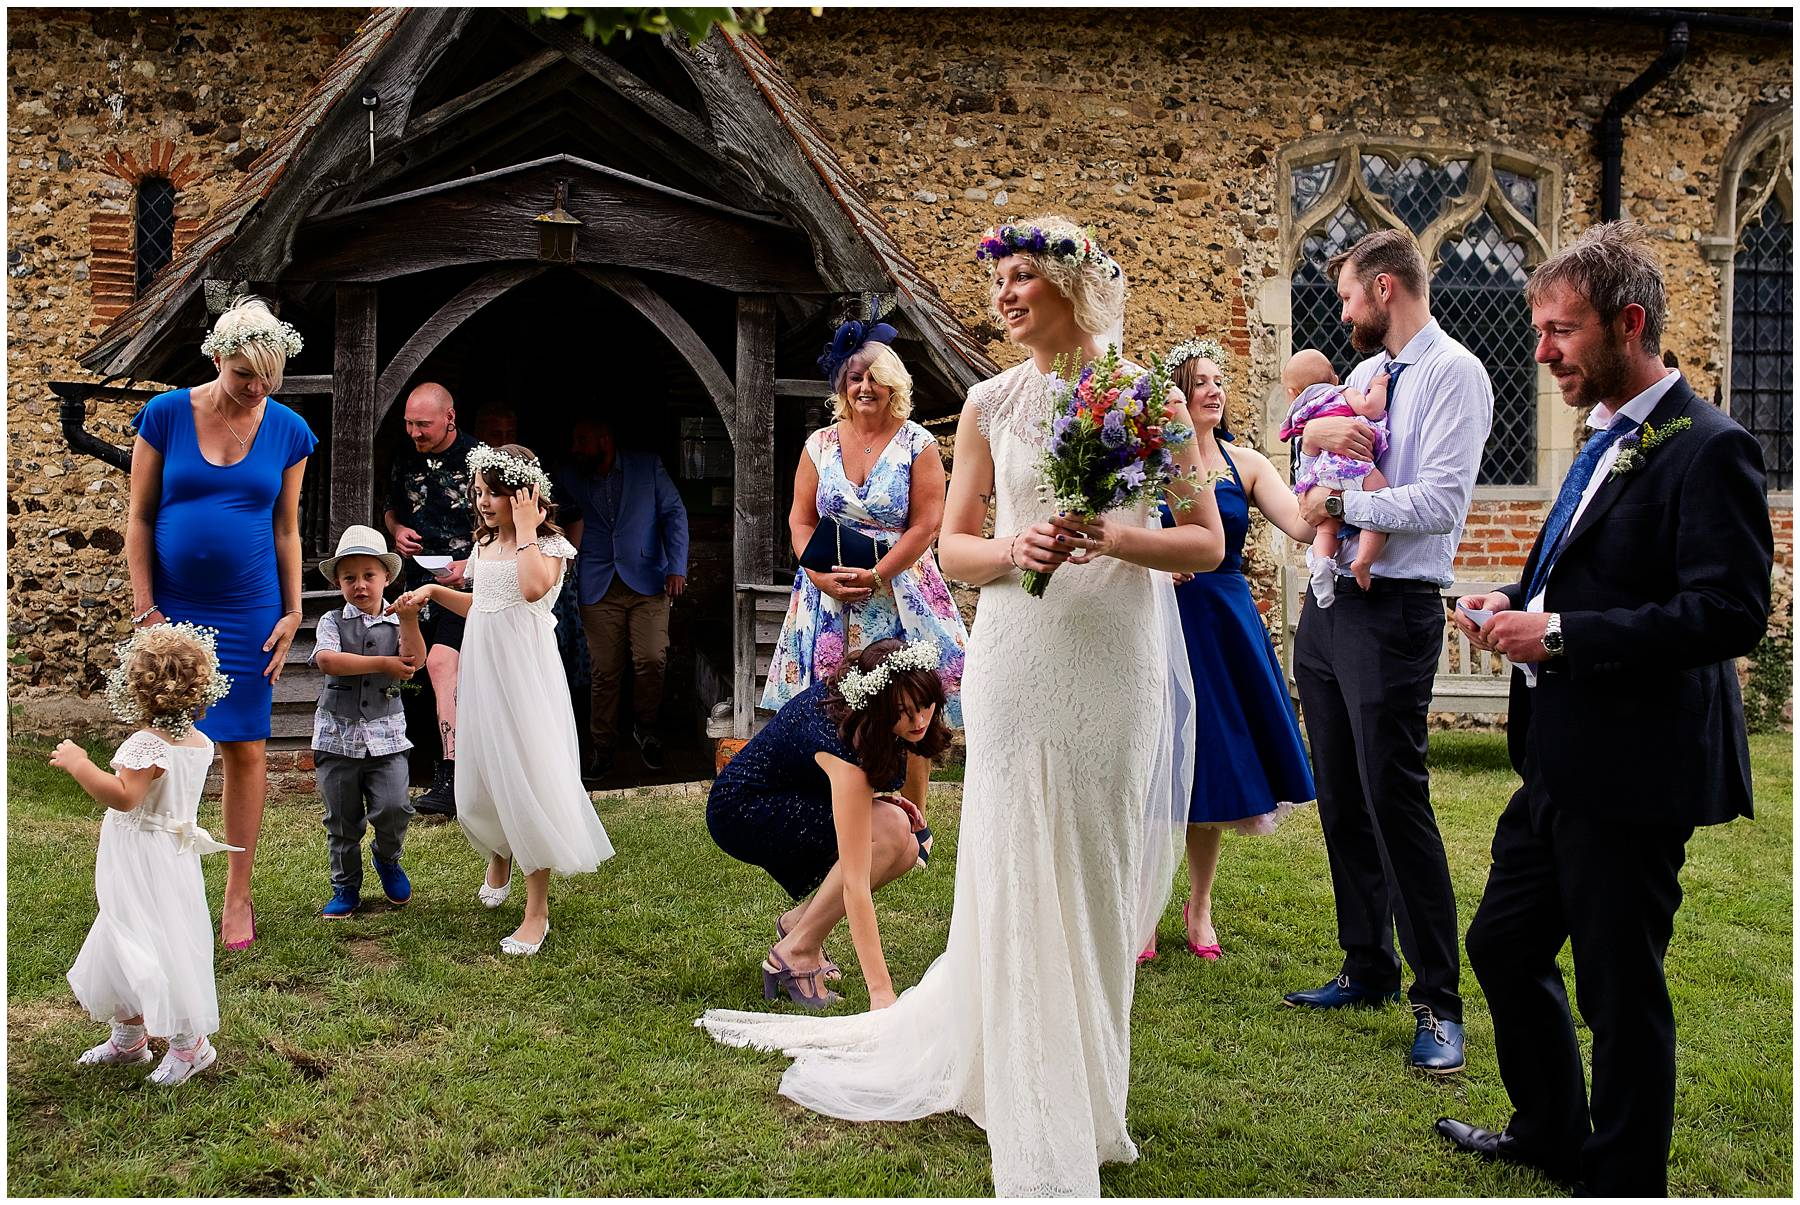 Festival bride at church wedding in Essex